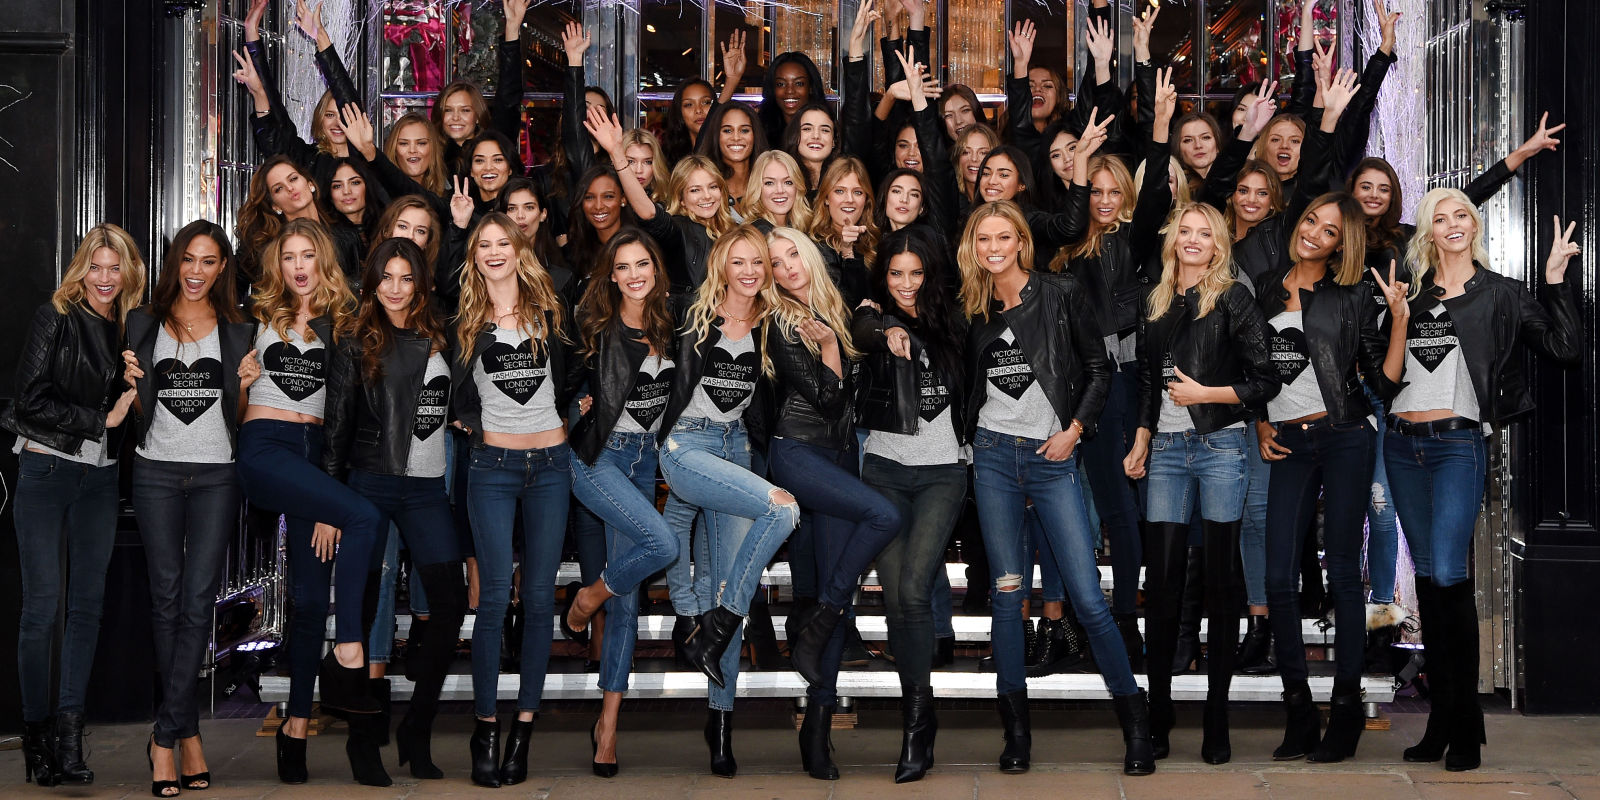 How Much Does The Victoria's Secret Fashion Show Cost To Produce And How Much Money Do The Victoria's Secret Fashion Show Tickets Cost? How Much Money Does It Cost Victoria's Secret To Create, Organize, Make, Produce, And Put On The Victoria's Secret Fashion Runway Show Each Year?